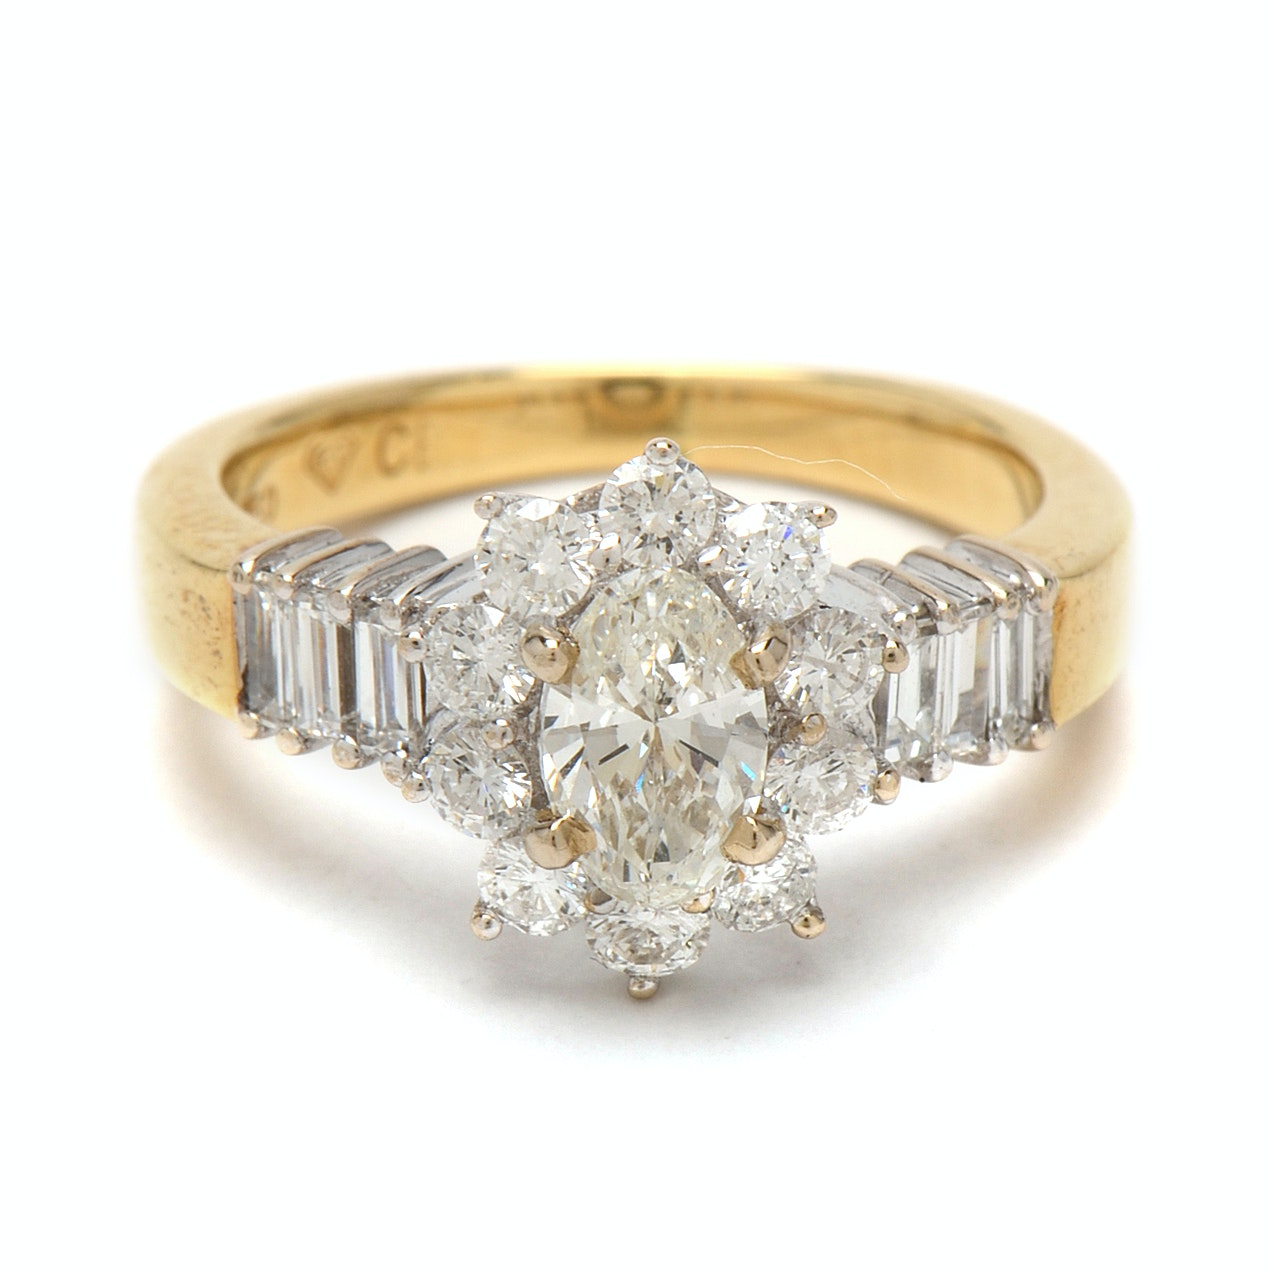 18K Yellow Gold 1.25CTW Diamond Ring